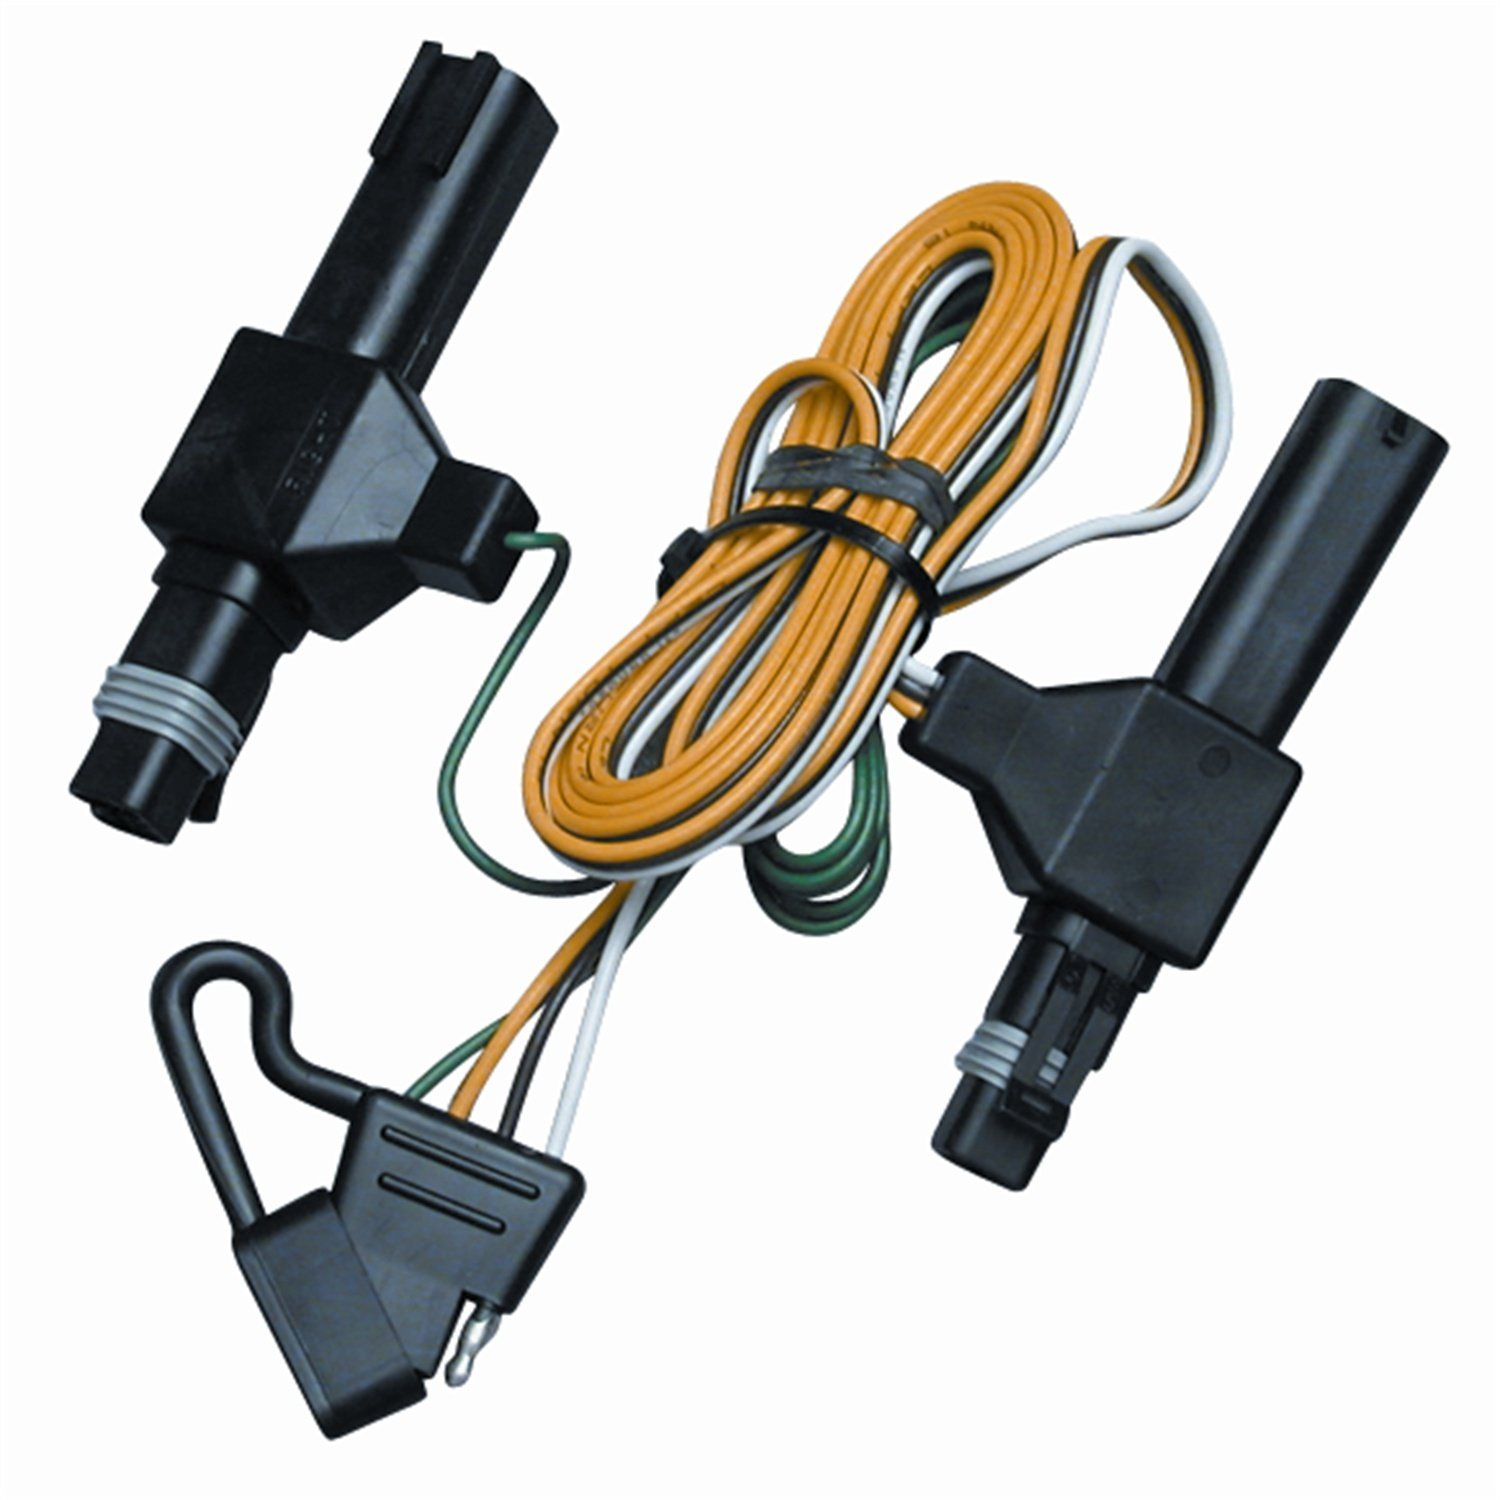 Trailer Wiring 86-02 Dodge Ram Ramcharger D/W Pickup & Trailduster, 87-94 Dakota